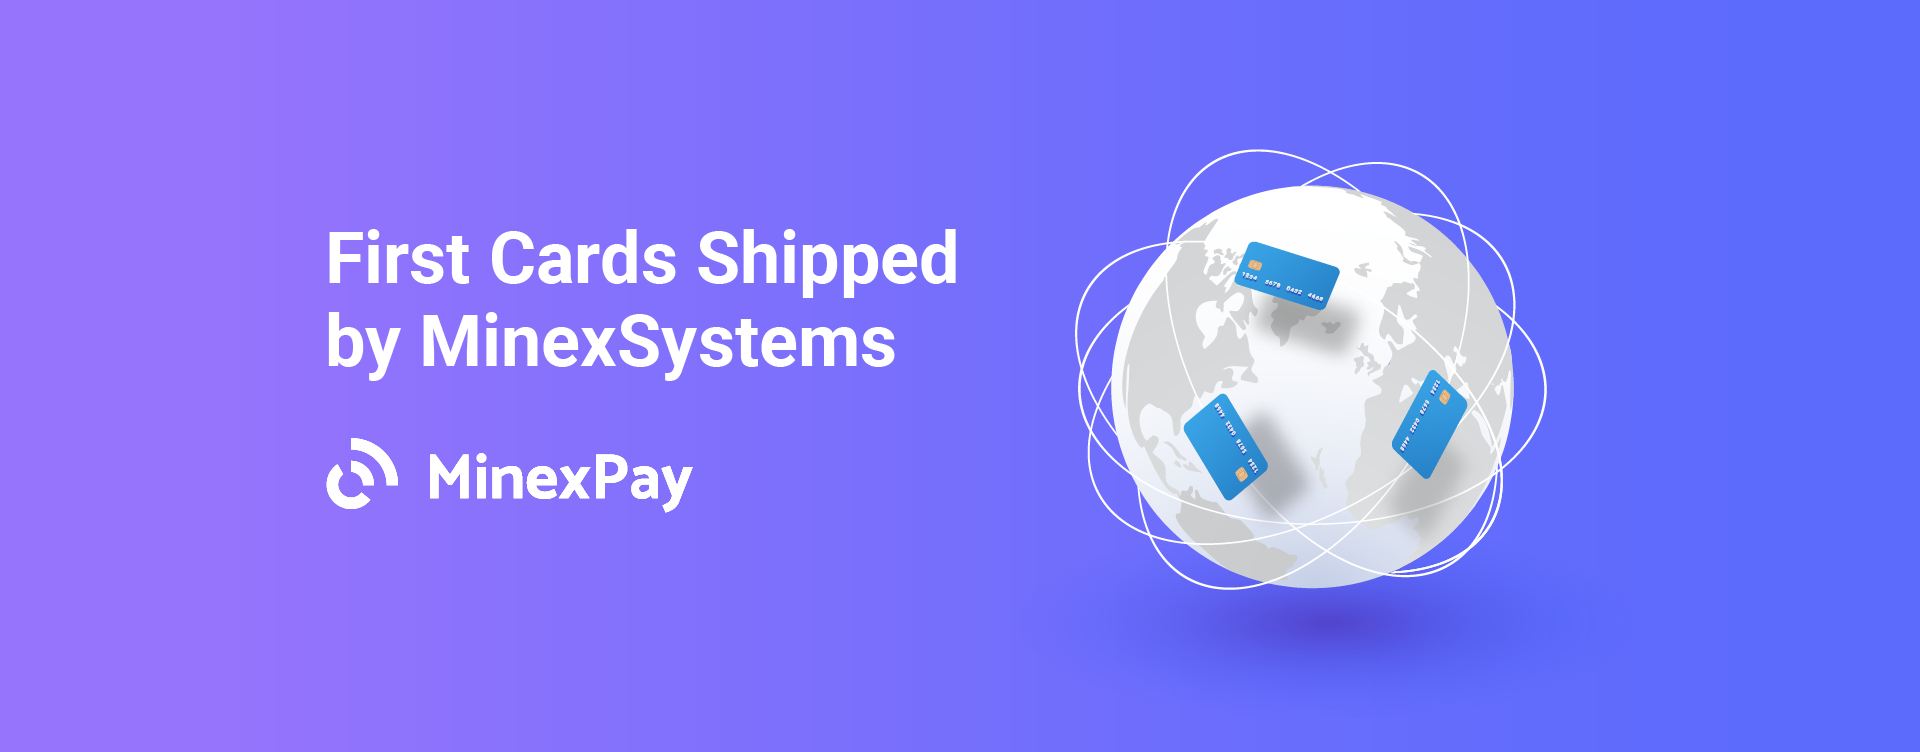 Press Release: MinexSystems Ships the Crypto Cards with Global Coverage and Cash-Out Starting at 0%